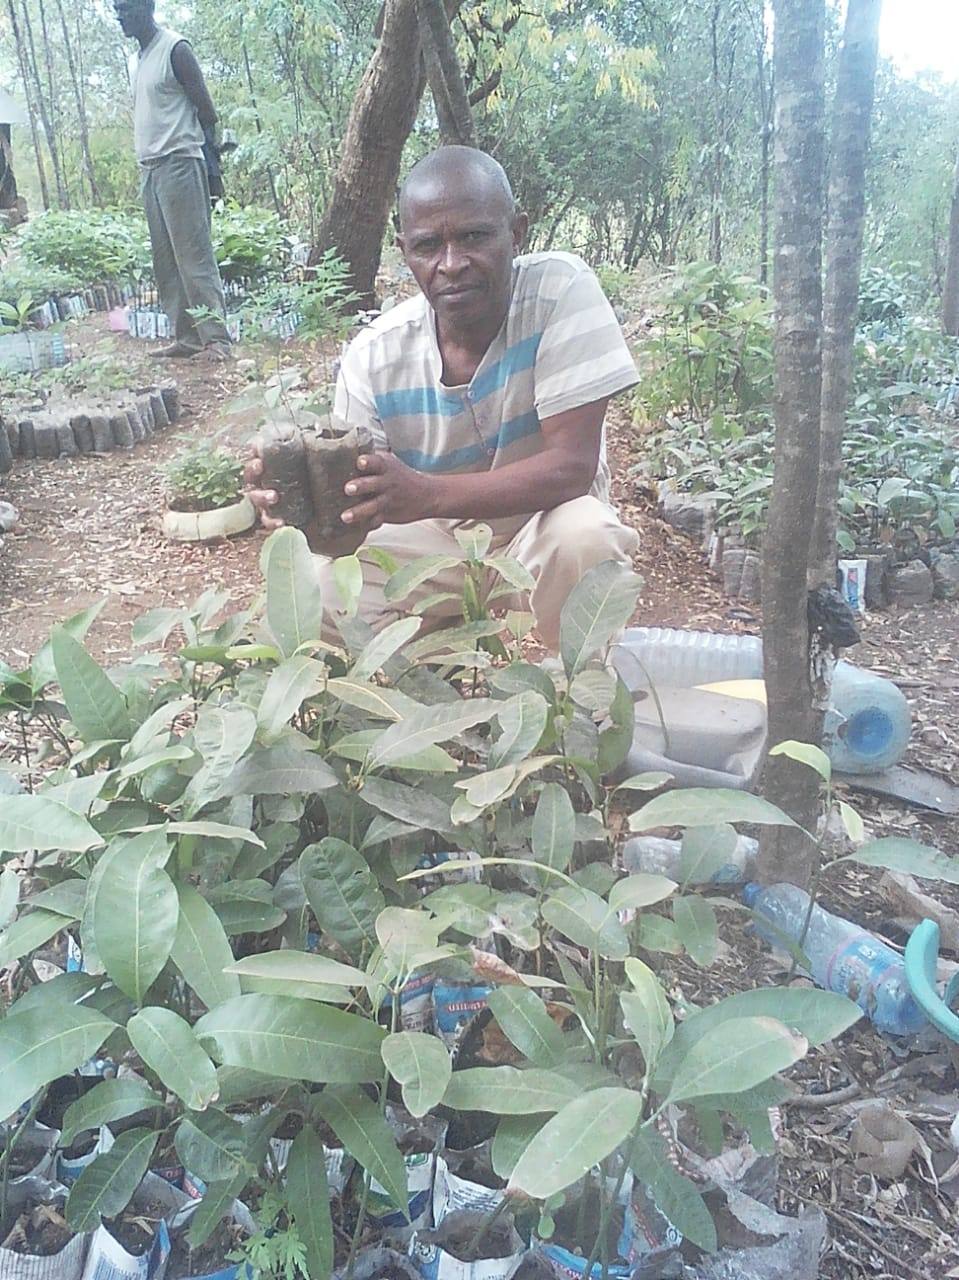 The trees - Mango, Neem and Jacaranda are among the 3 species of trees planted through our partnership with a cooperative of wood artisans in Machakos, Kenya. At the nursery, plastic bottles and bags have been reused for drip-feeding the seedlings before and after transplantation.